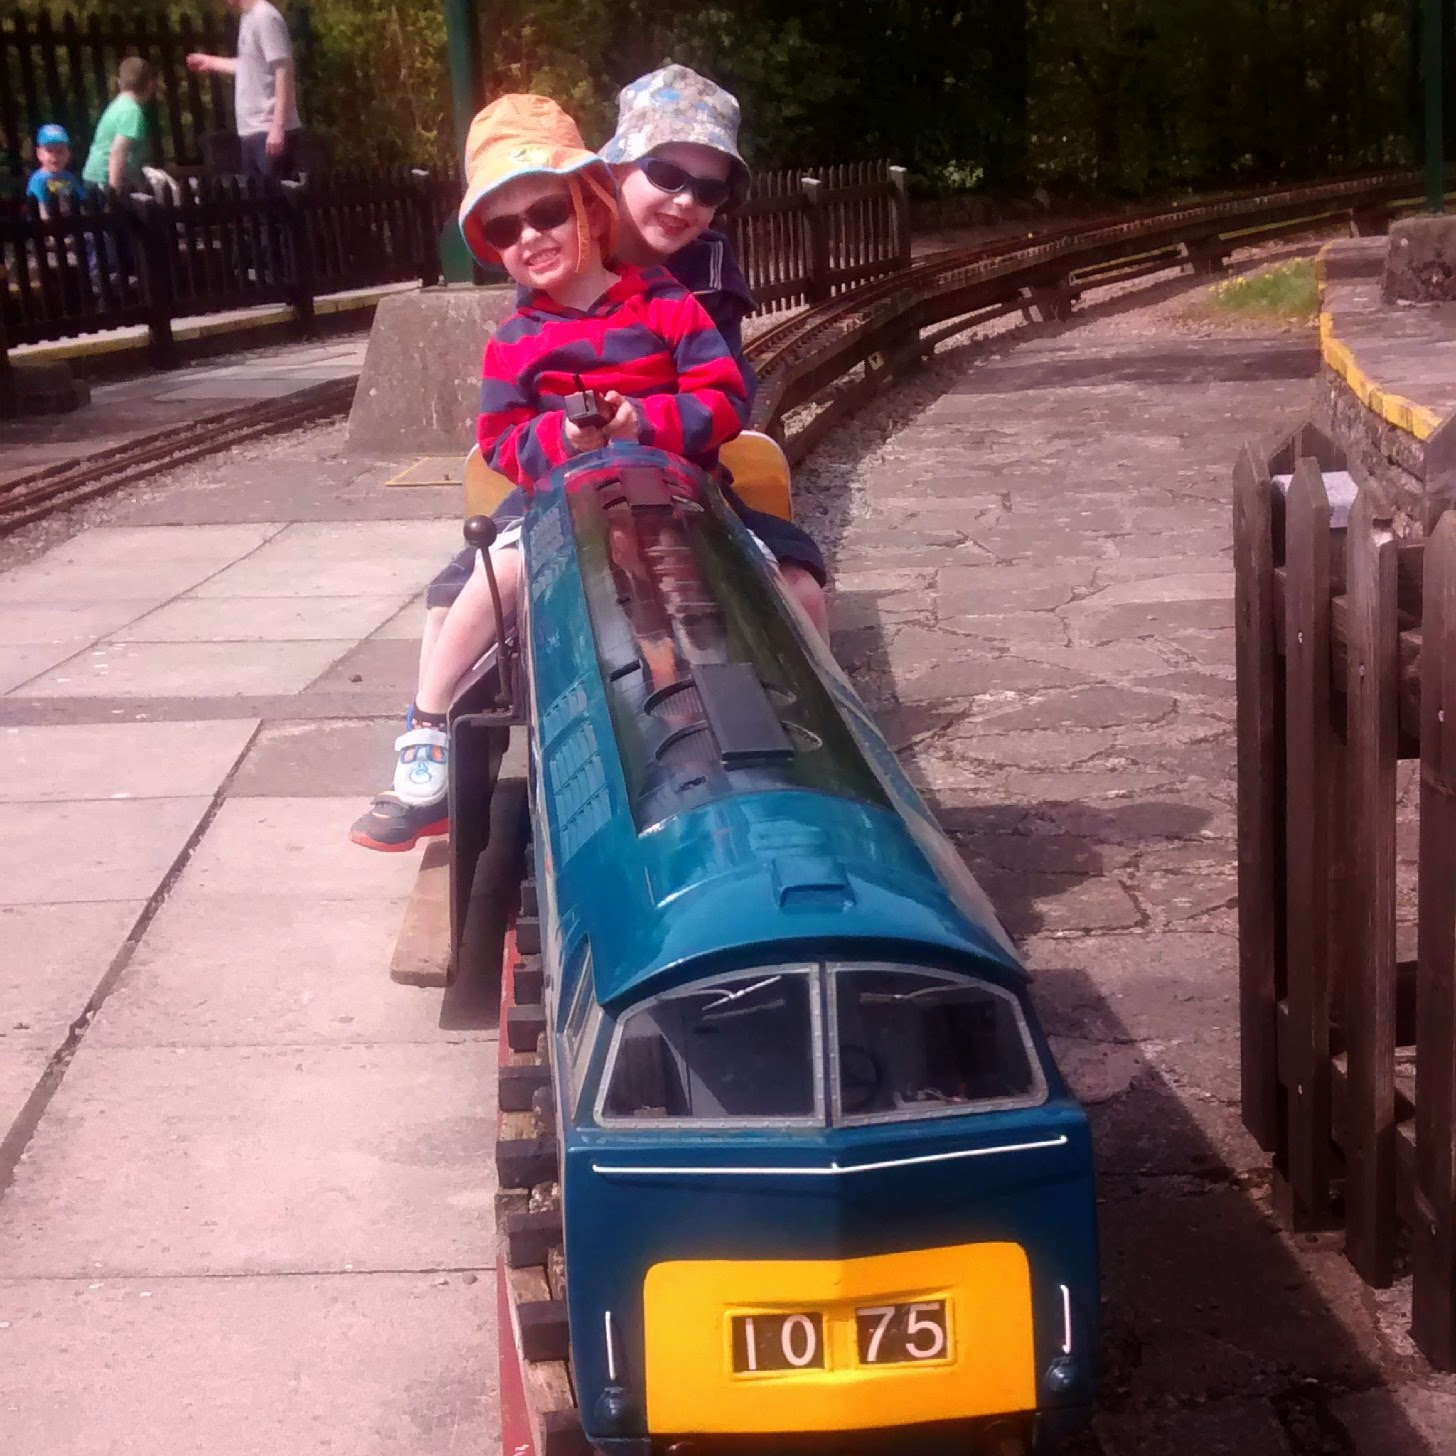 http://lebabybakery.blogspot.co.uk/2013/09/ashton-court-minature-railway.html